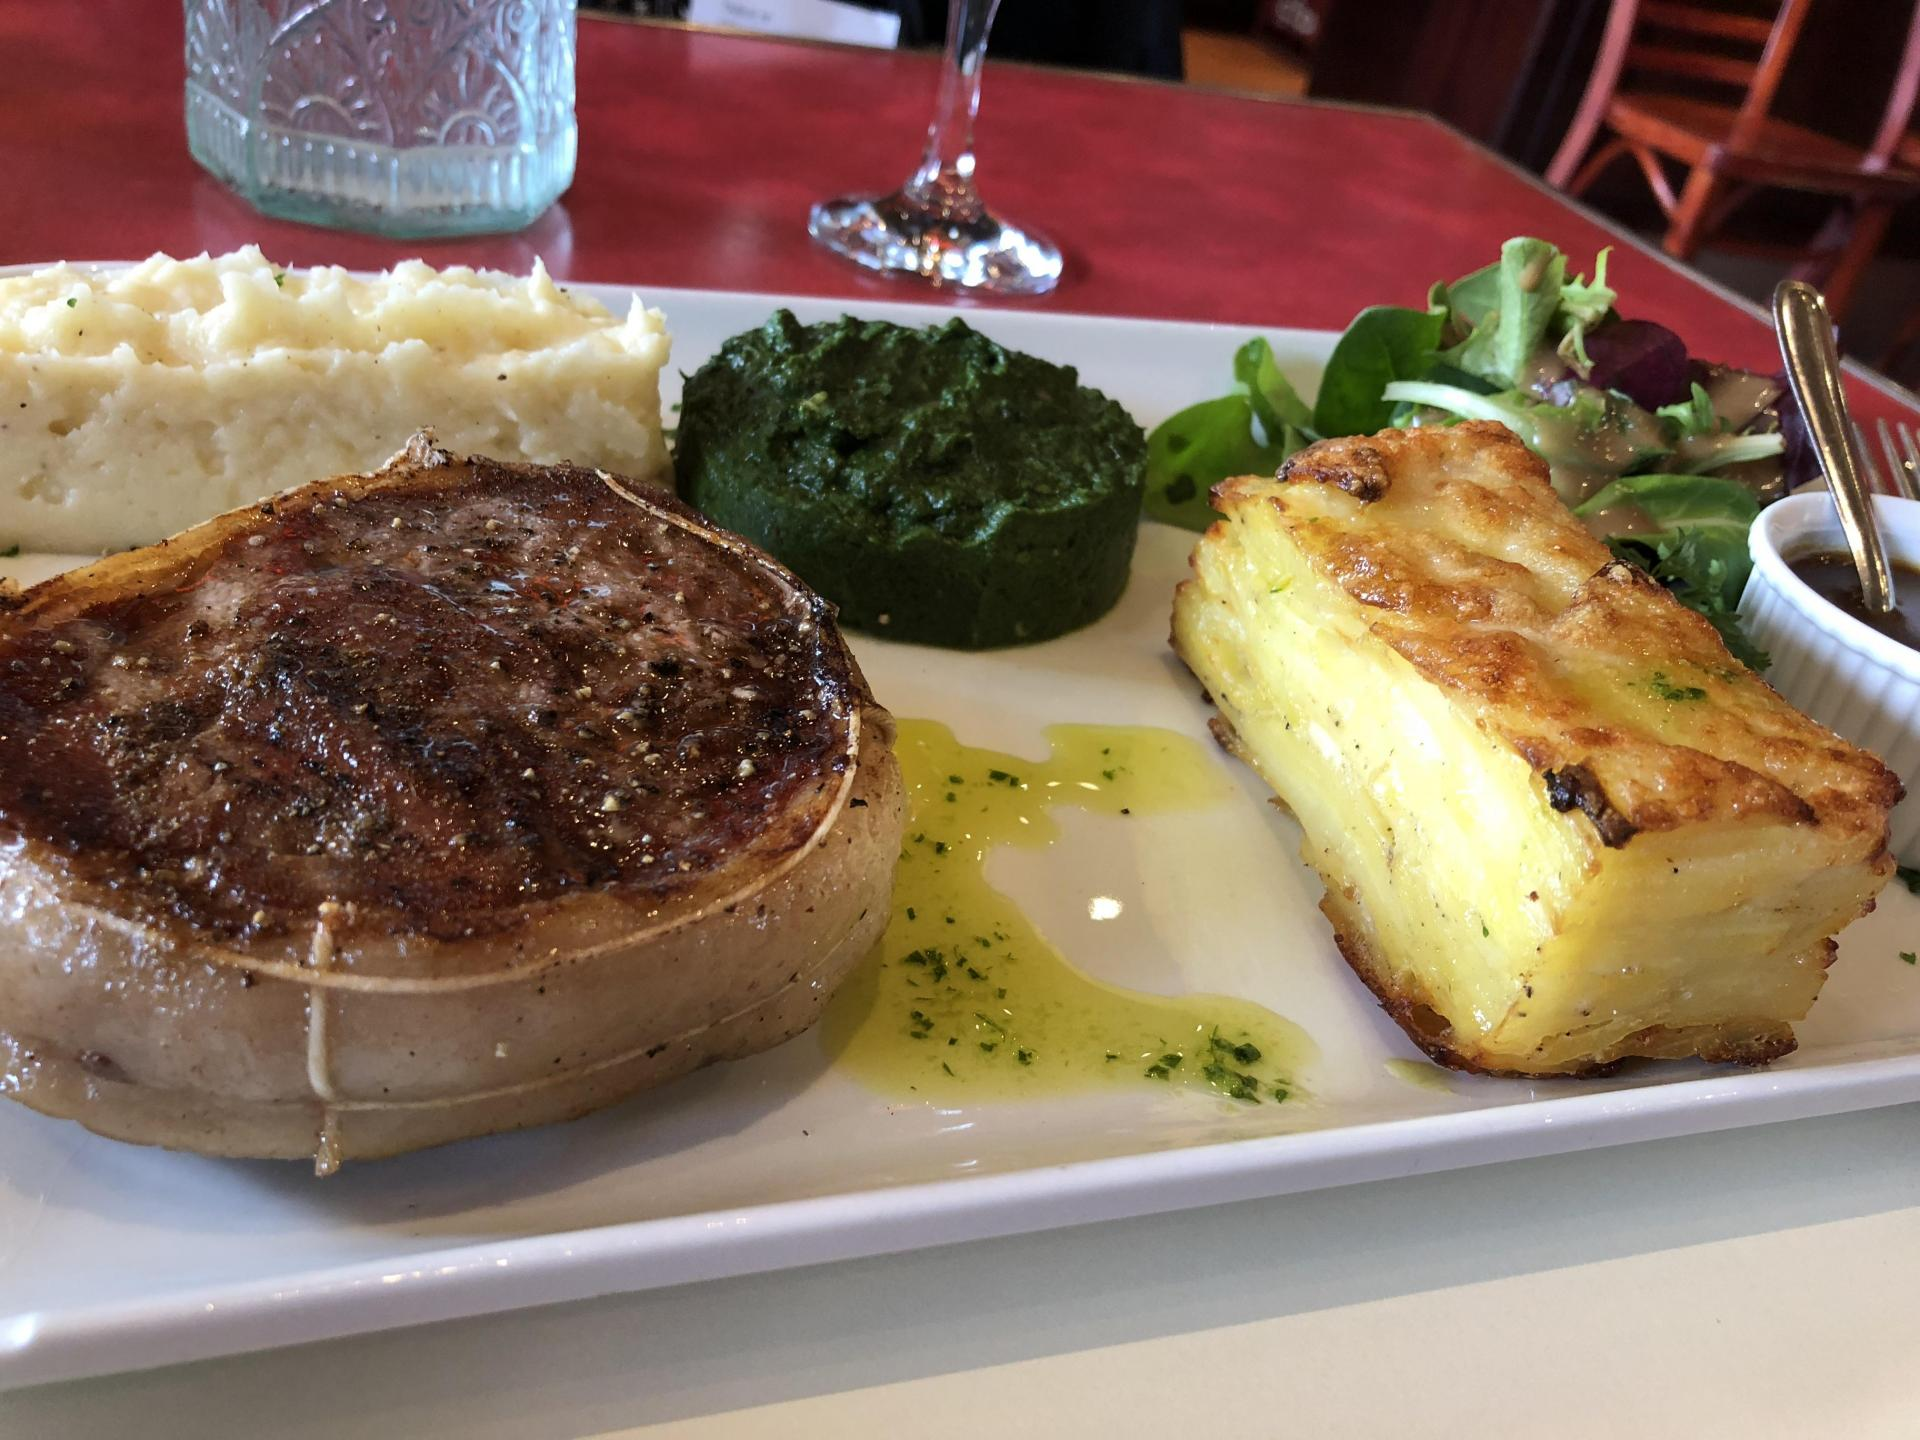 Veal, gratin dauphinois, two